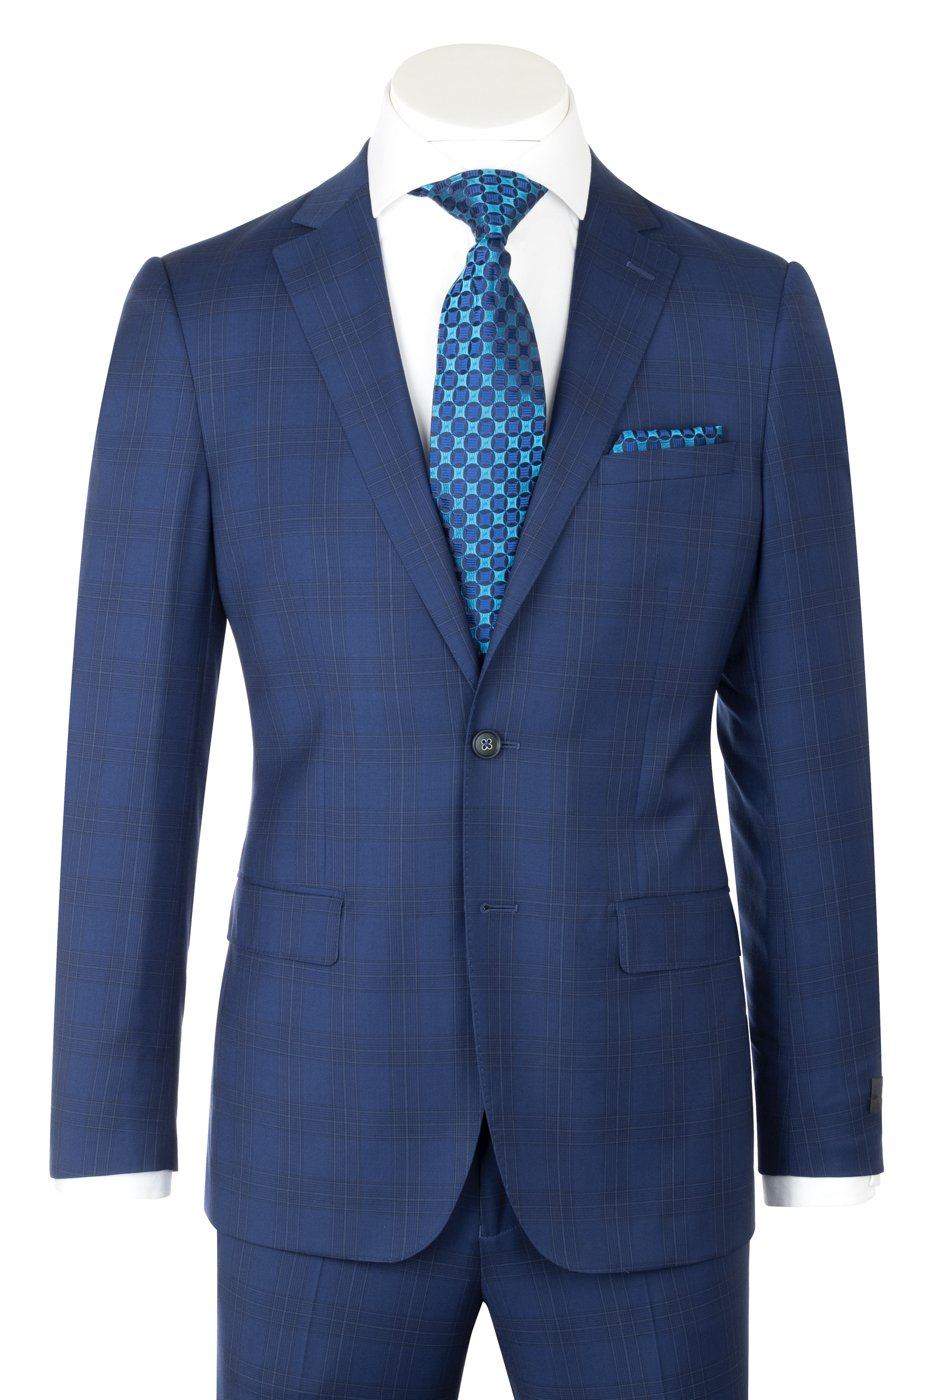 Porto Slim Fit, Cobalt Blue with windowpane, Pure Wool Suit by REDA Cloth by Canaletto Menswear CR141606/6